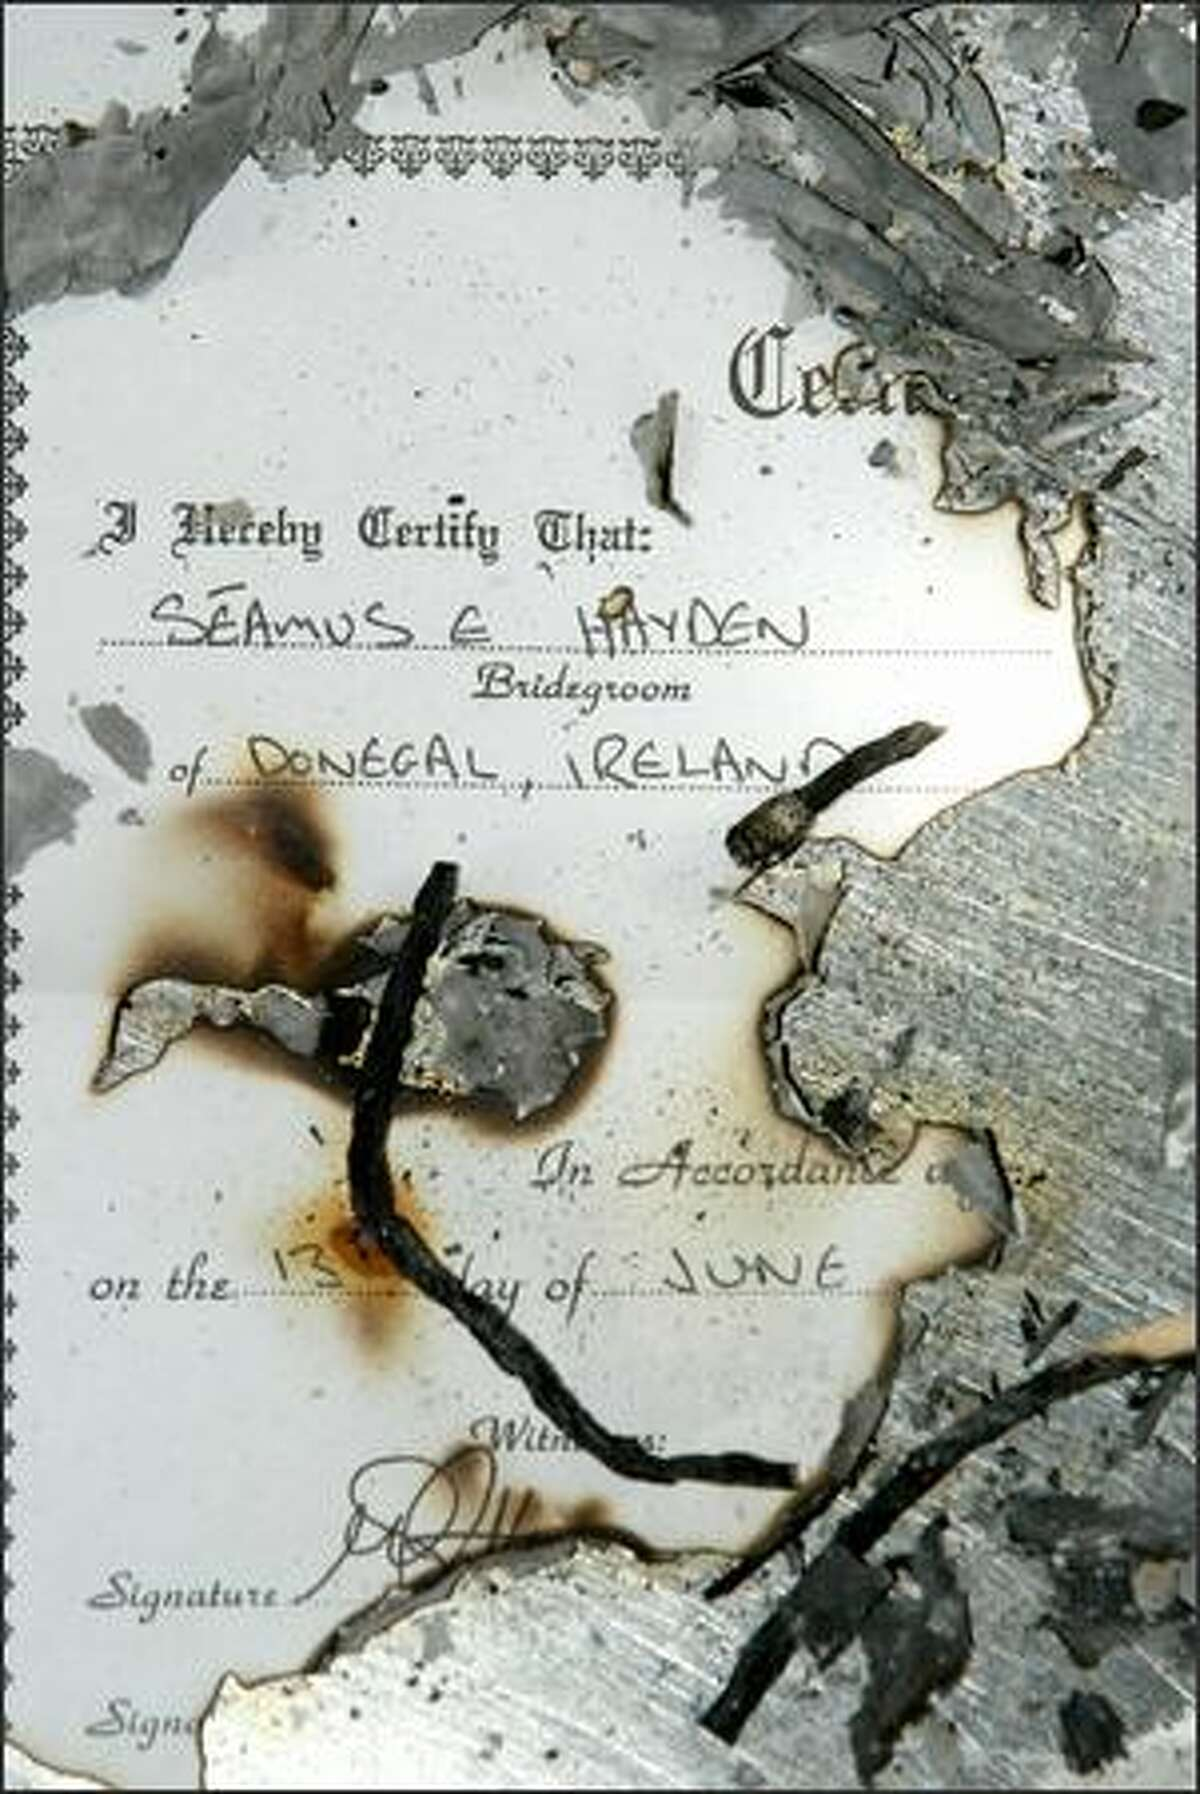 The scorched remains of a copy of Amanda Schultz's wedding certificate is evidence of her passing through the Anger stage of her marriage wake.